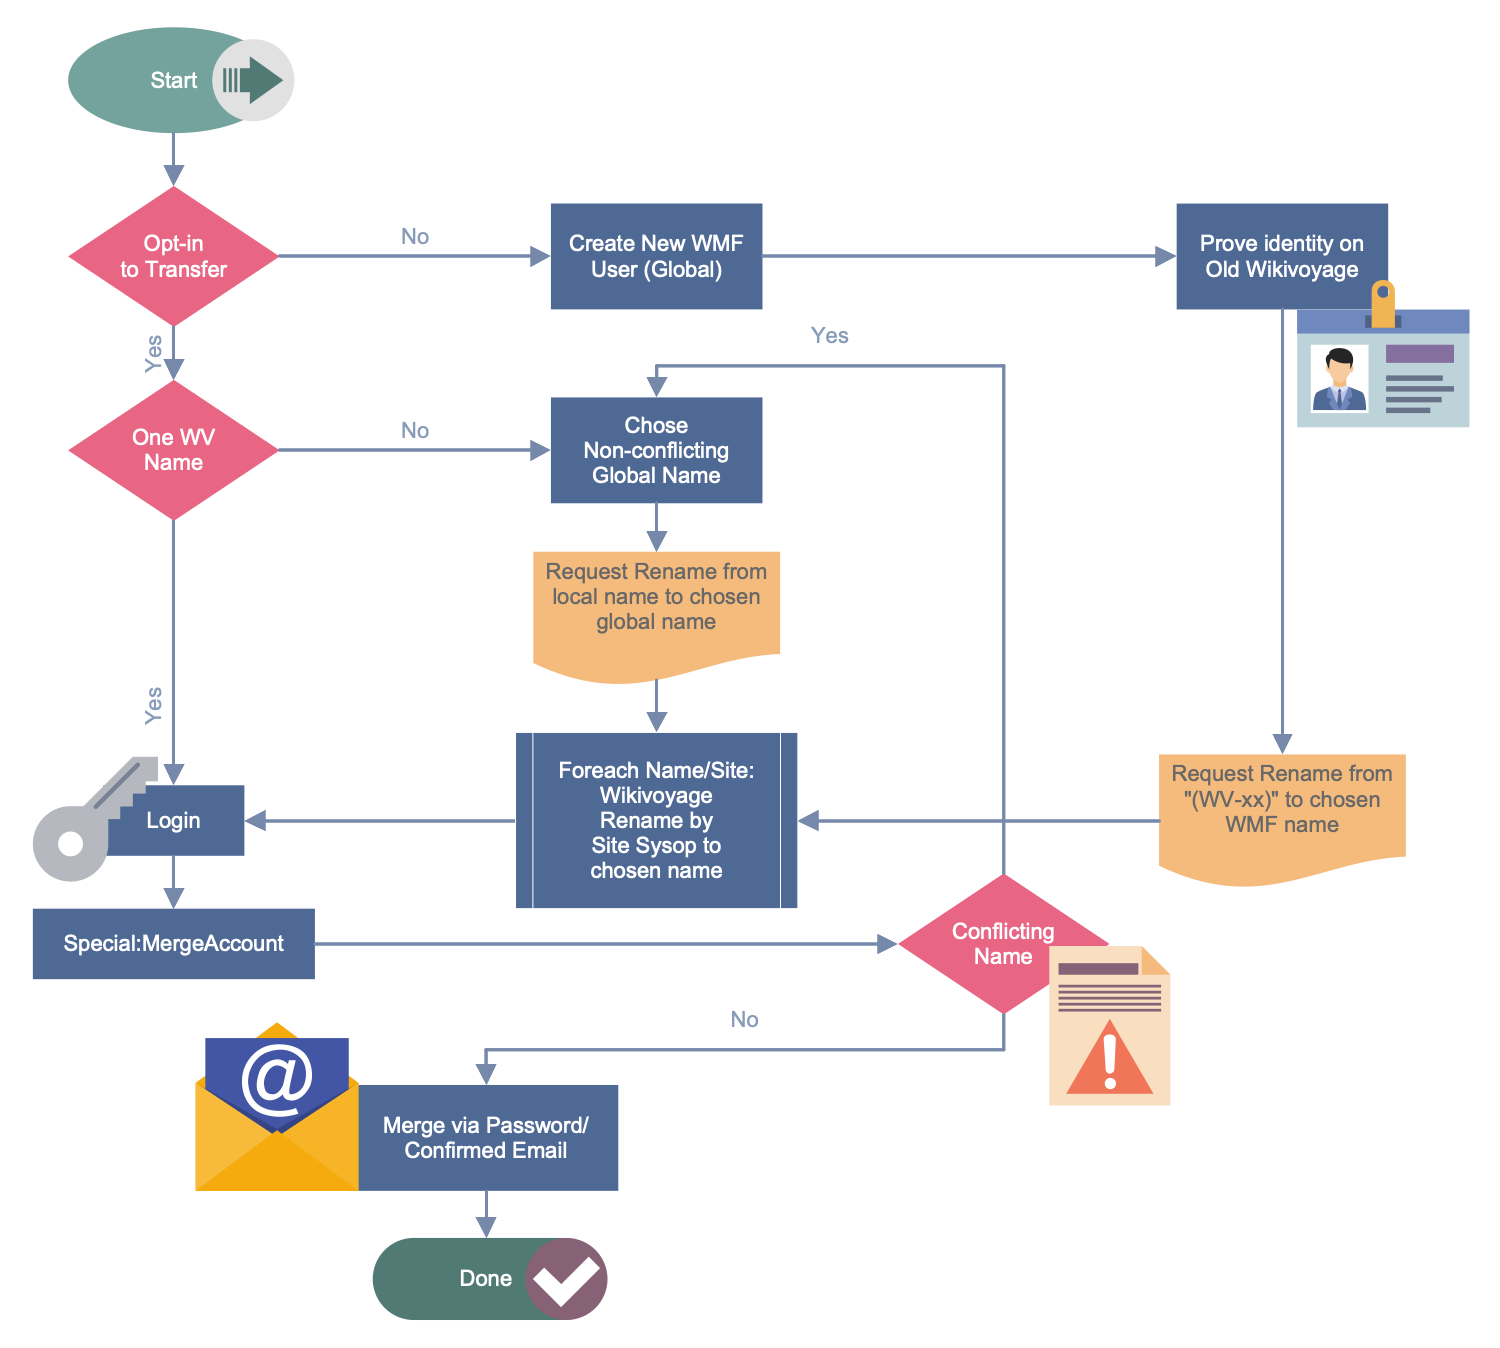 Business Process Workflow Diagram - Wikivoyage Global ID Workflow